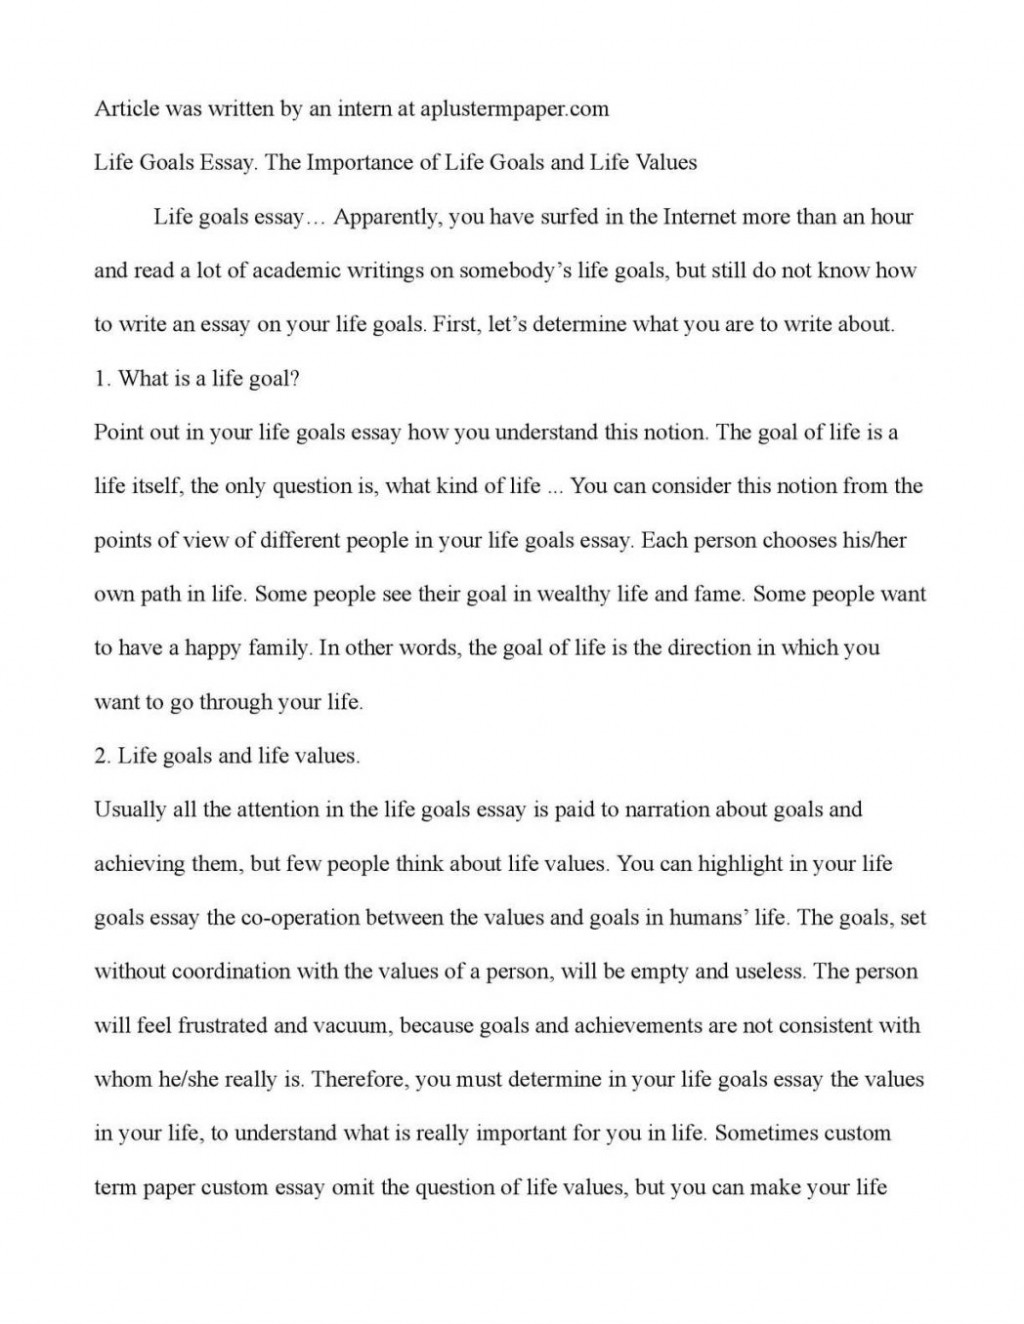 001 Essay Example Life Goals Narrative On Achieving Goal My Purpose In Exampl Examples Ambition Stunning A Large